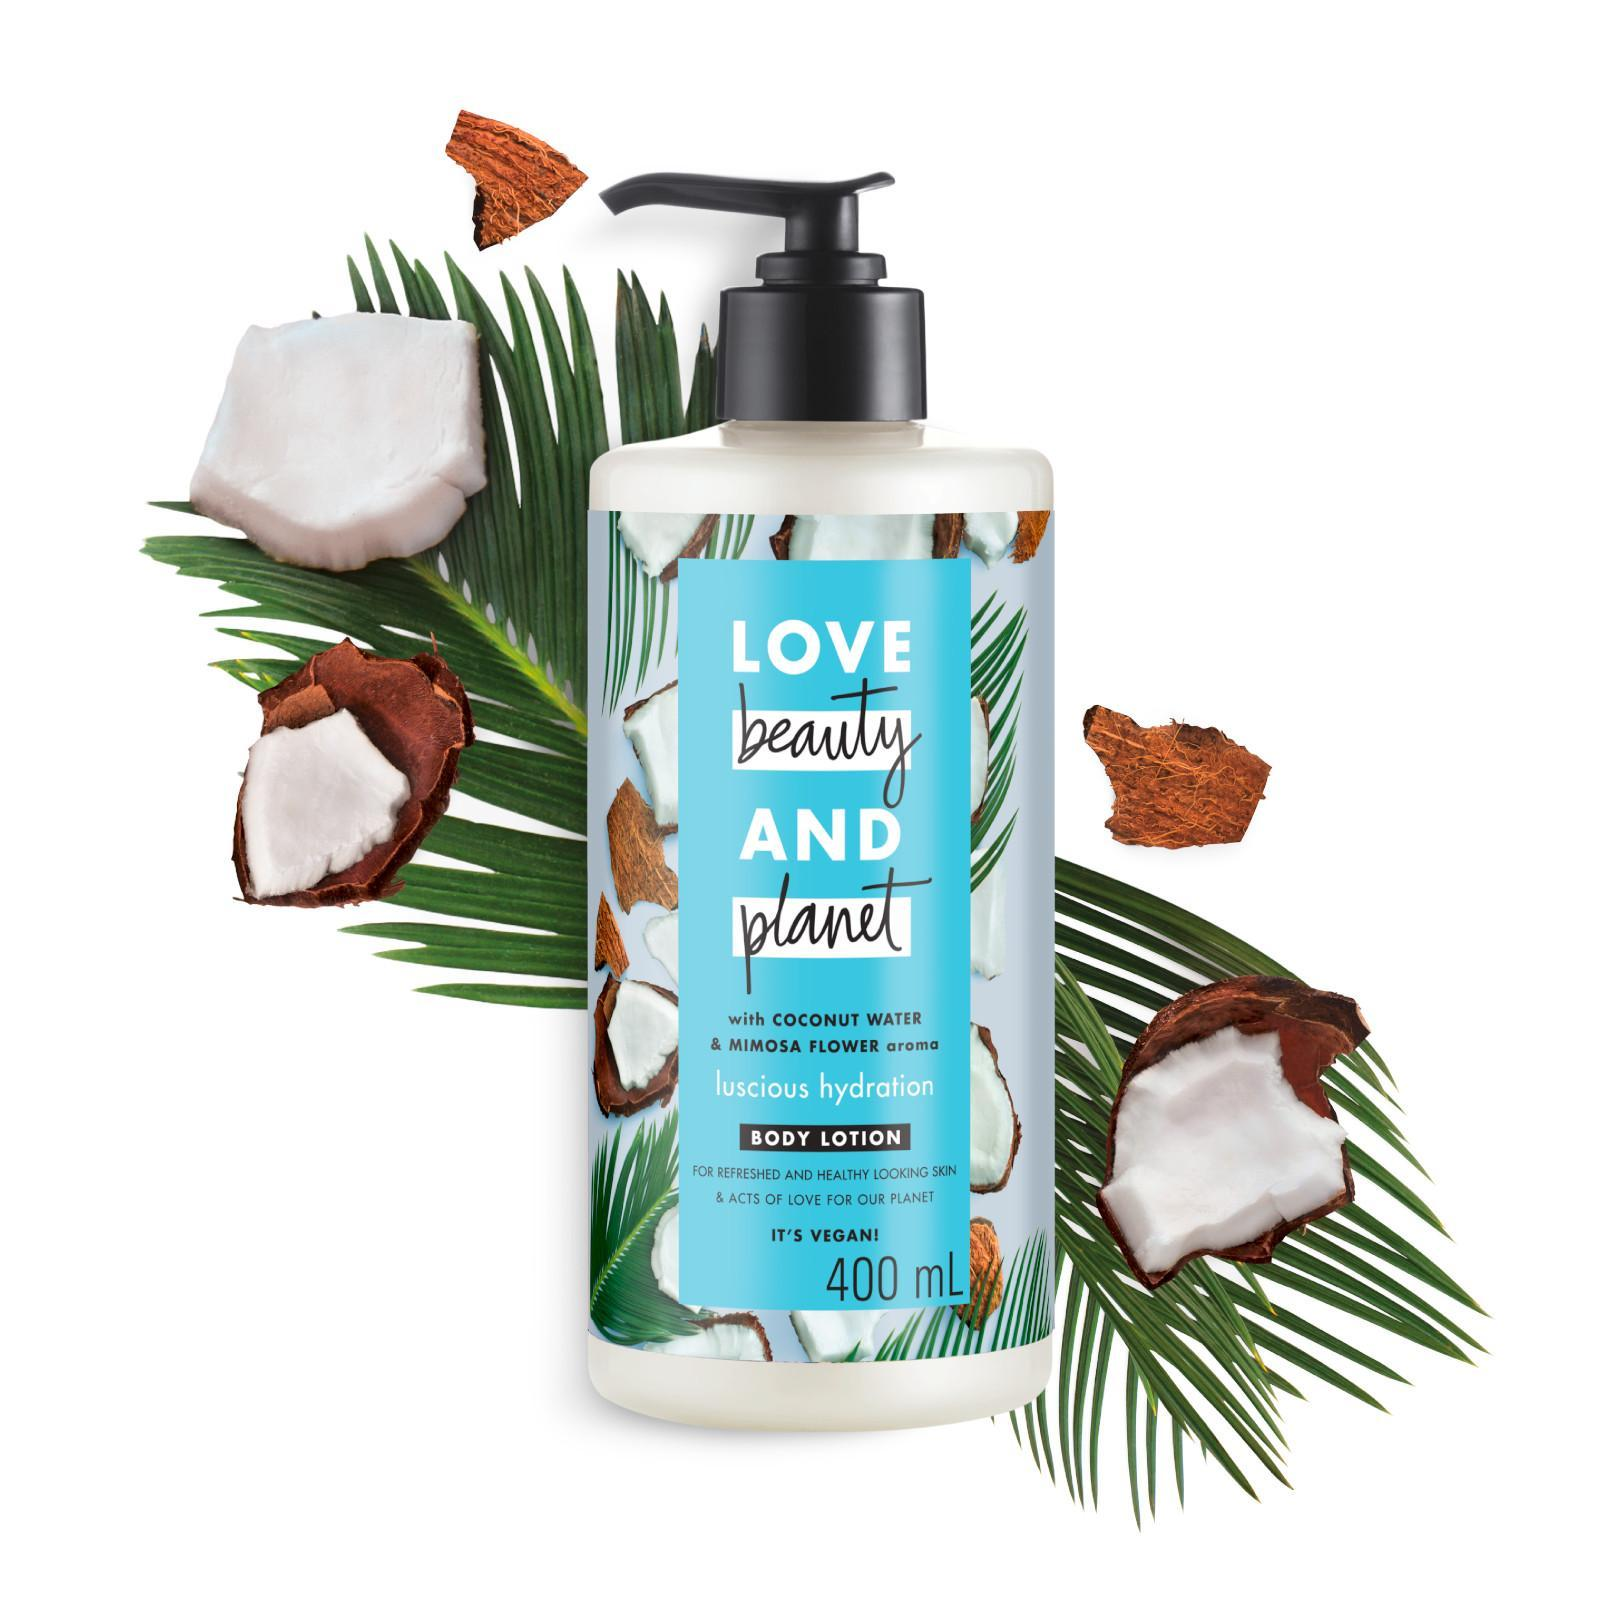 Love Beauty & Planet Vegan Body Lotion Coconut Water and Mimosa Flower Luscious Hydration